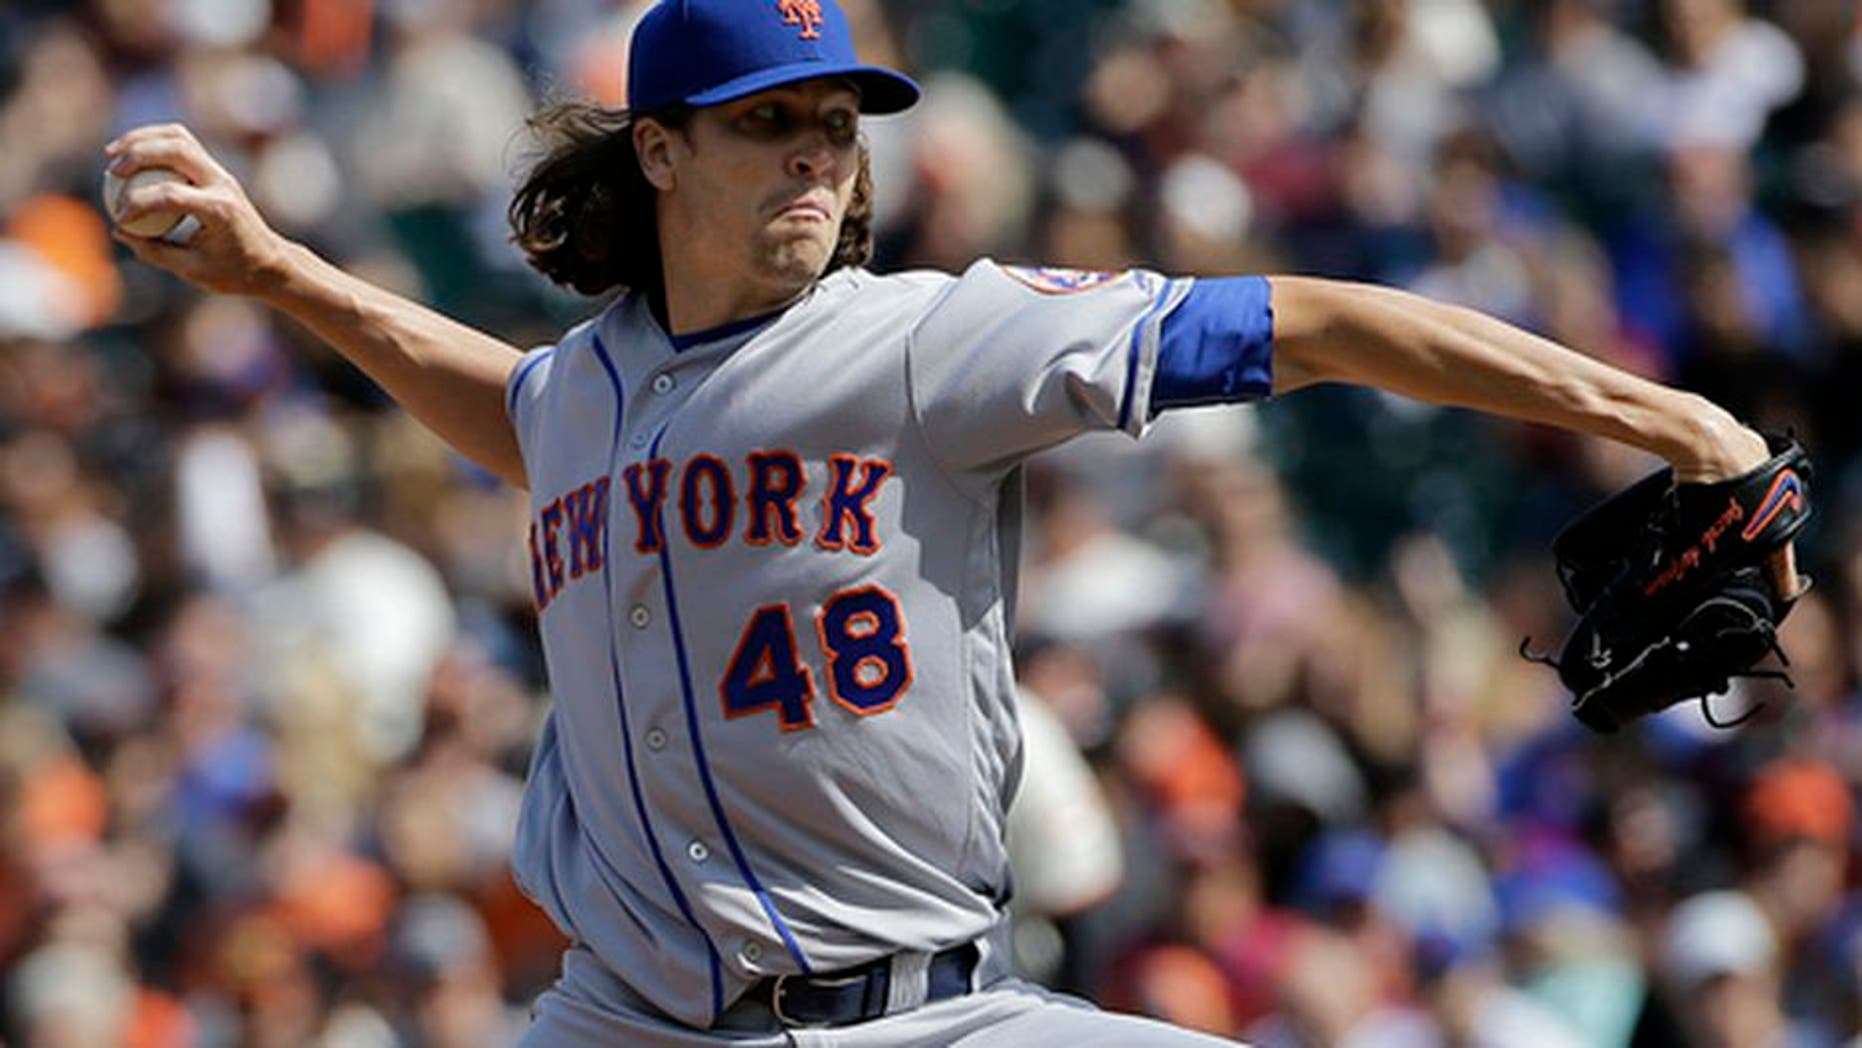 New York Mets pitcher Jacob deGrom (48) throws against the San Francisco Giants during the first inning of a baseball game in San Francisco, Saturday, June 24, 2017. (AP Photo/Jeff Chiu)